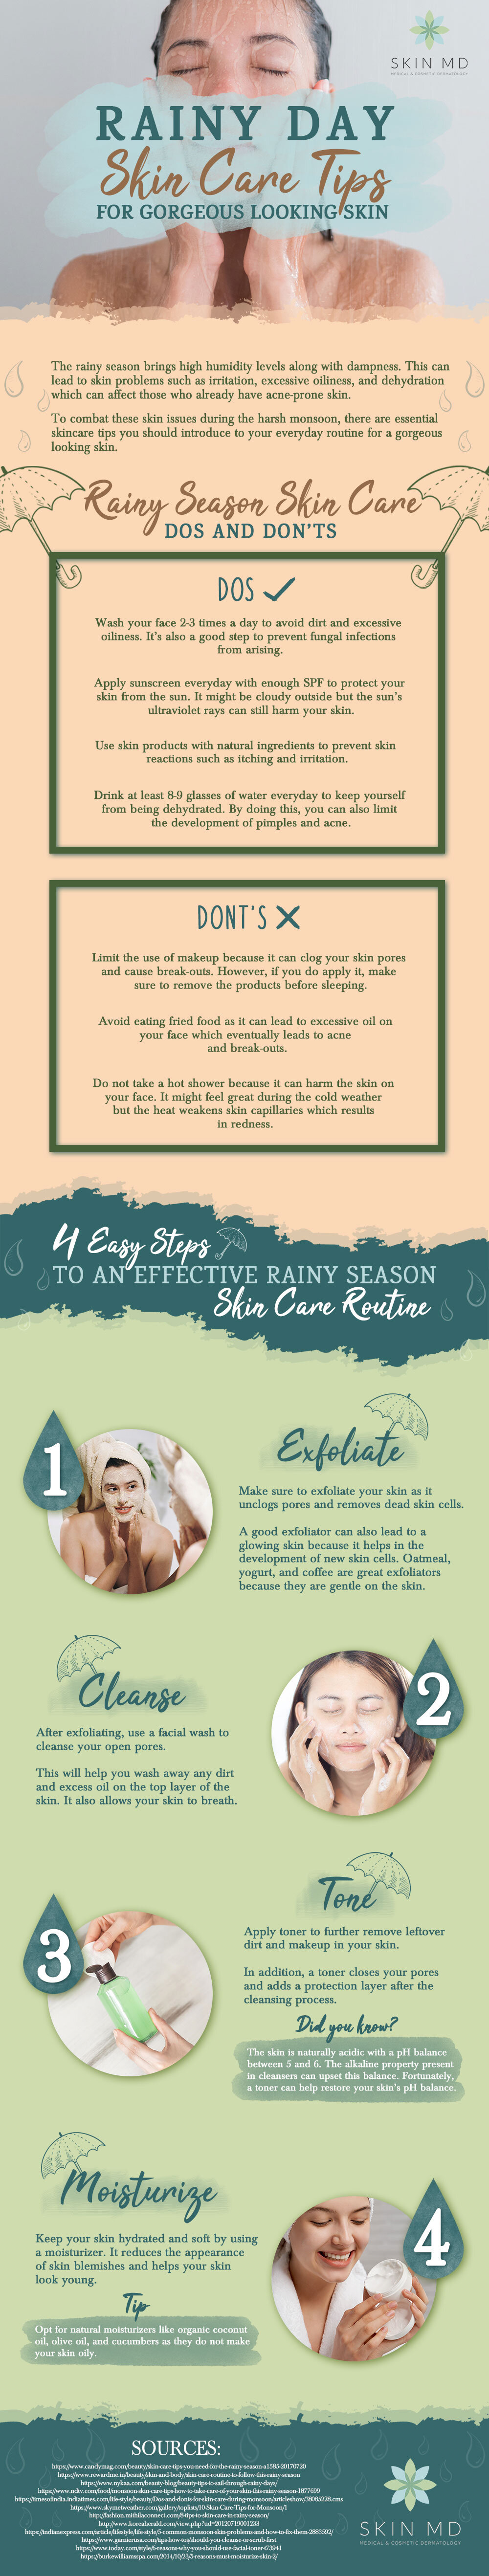 Essential Rainy Season Skin Care Tips to Beat the Harsh Weather Infographic